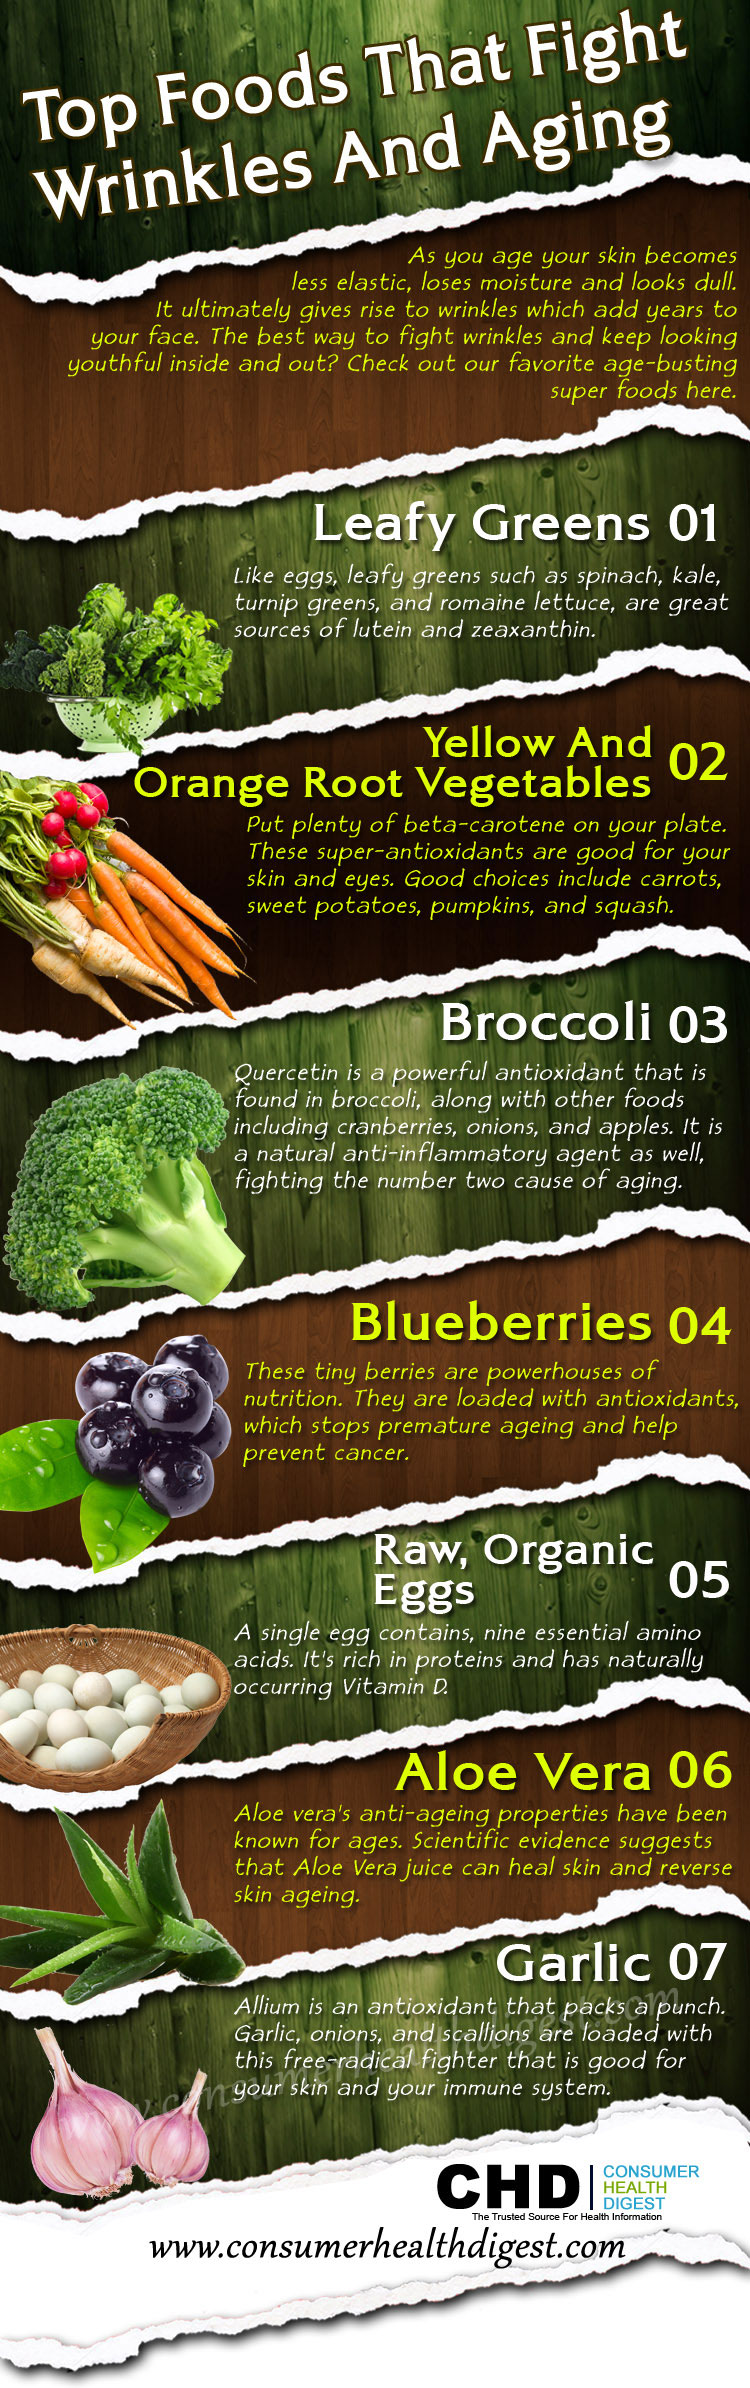 01 top-foods-that-fight-wrinkles